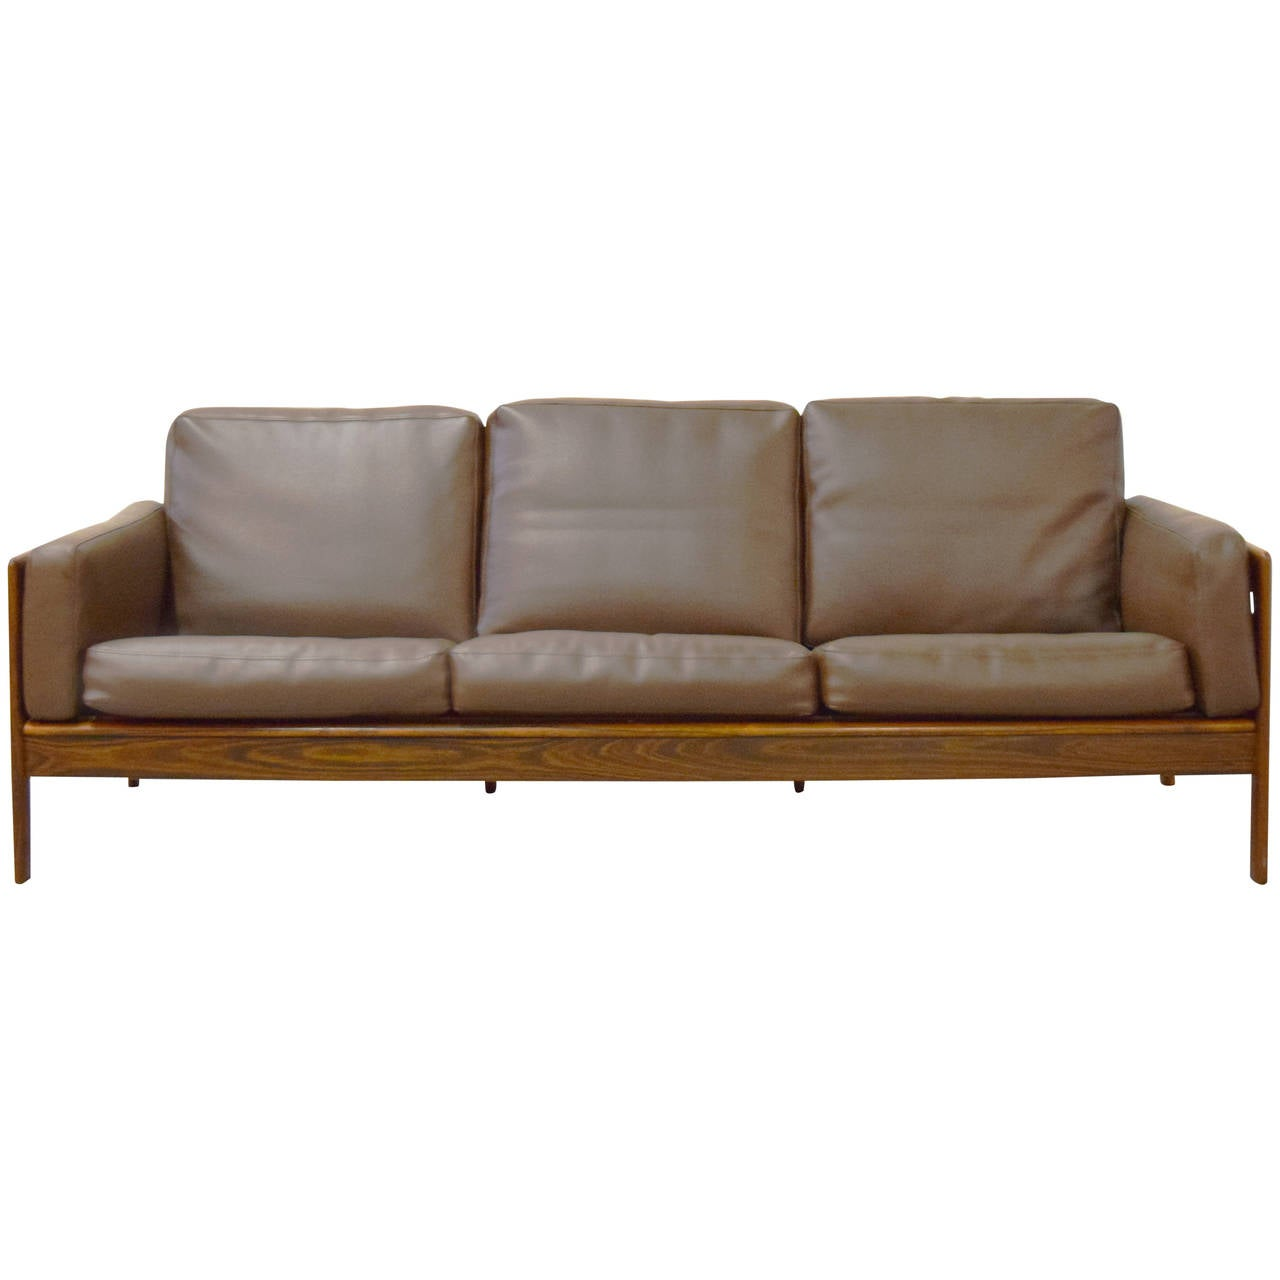 komfort mobler rosewood sofa at 1stdibs. Black Bedroom Furniture Sets. Home Design Ideas